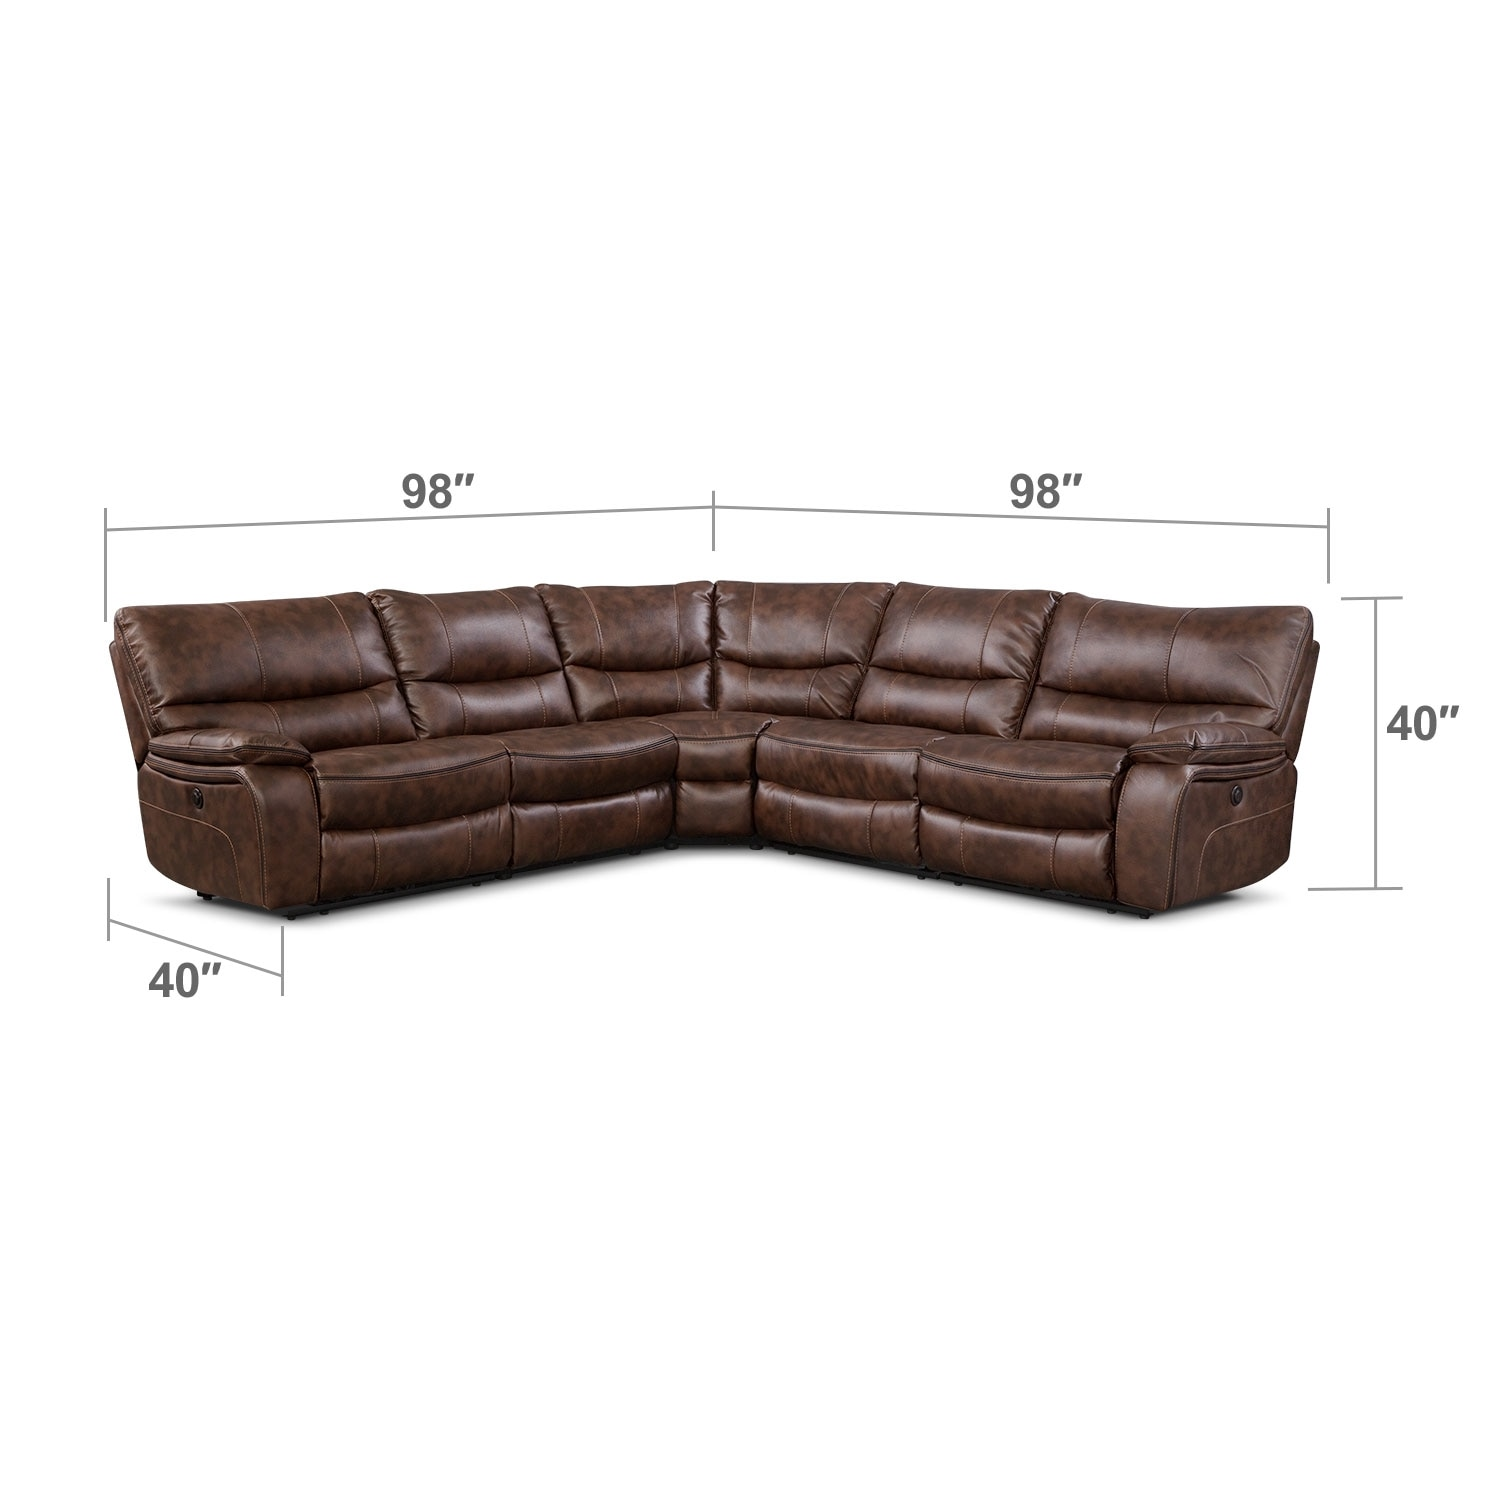 Orlando II 5 Pc. Power Reclining Sectional : Value City Furniture